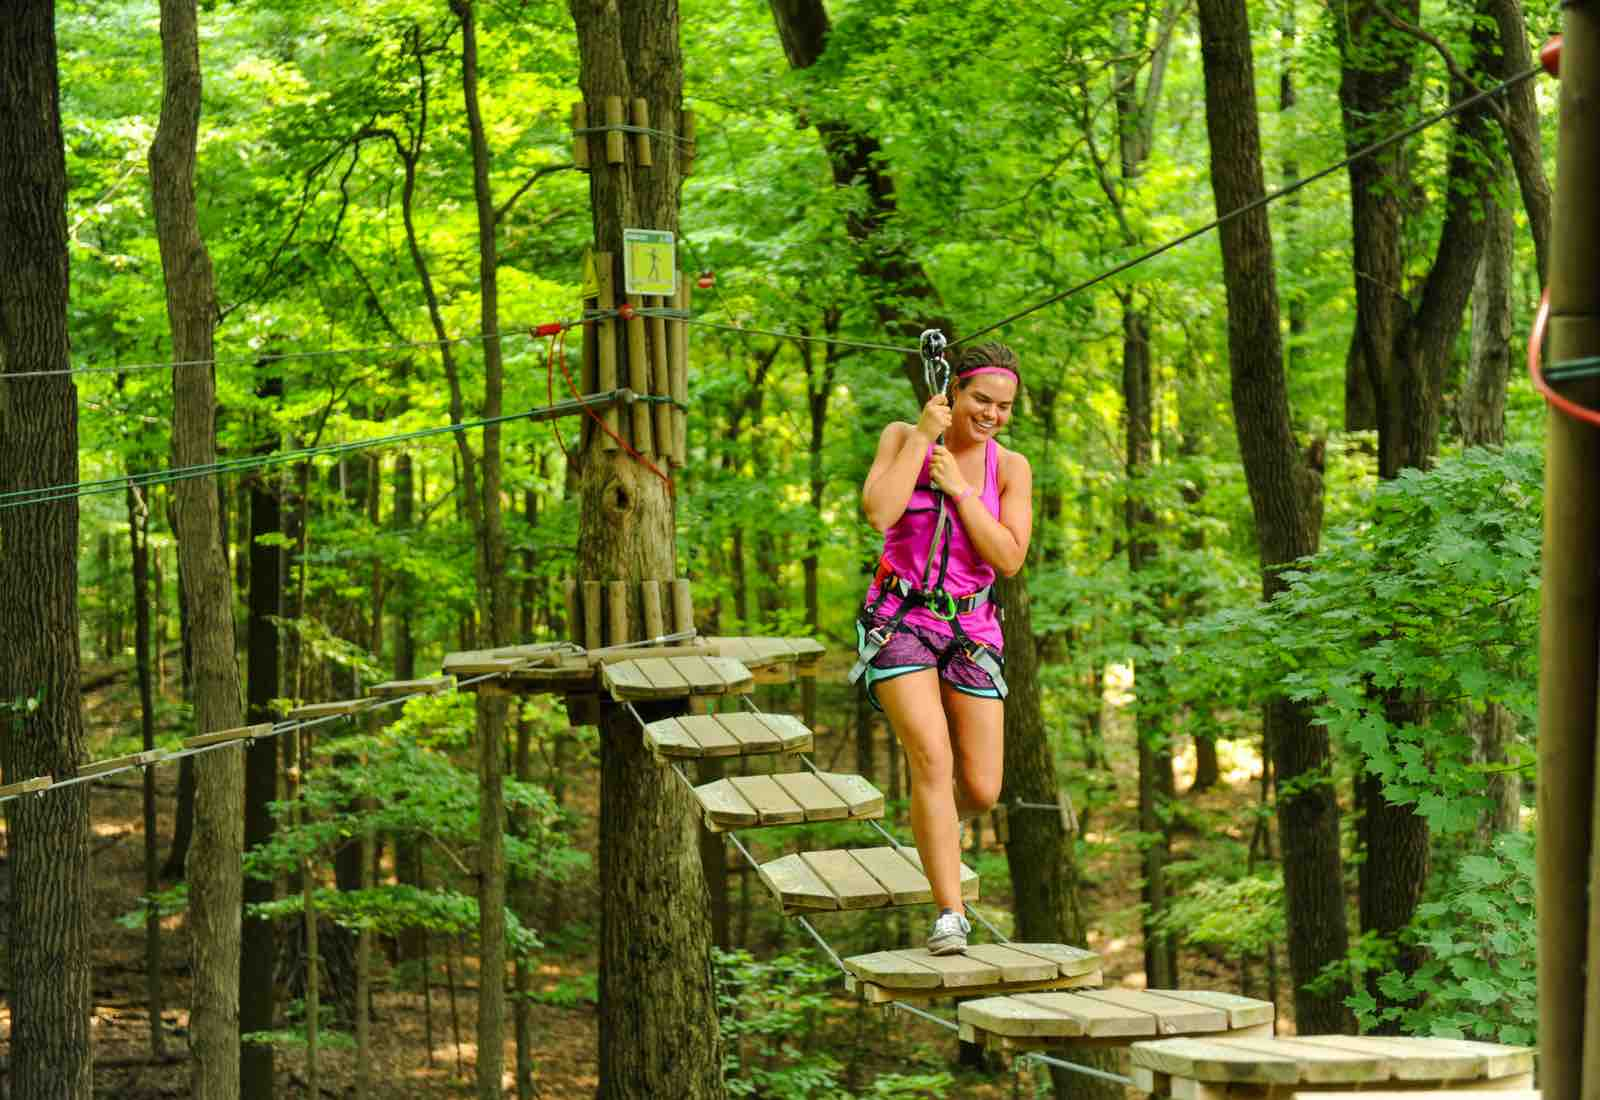 Go On A Treetop Adventure With Go Ape Cool Progeny